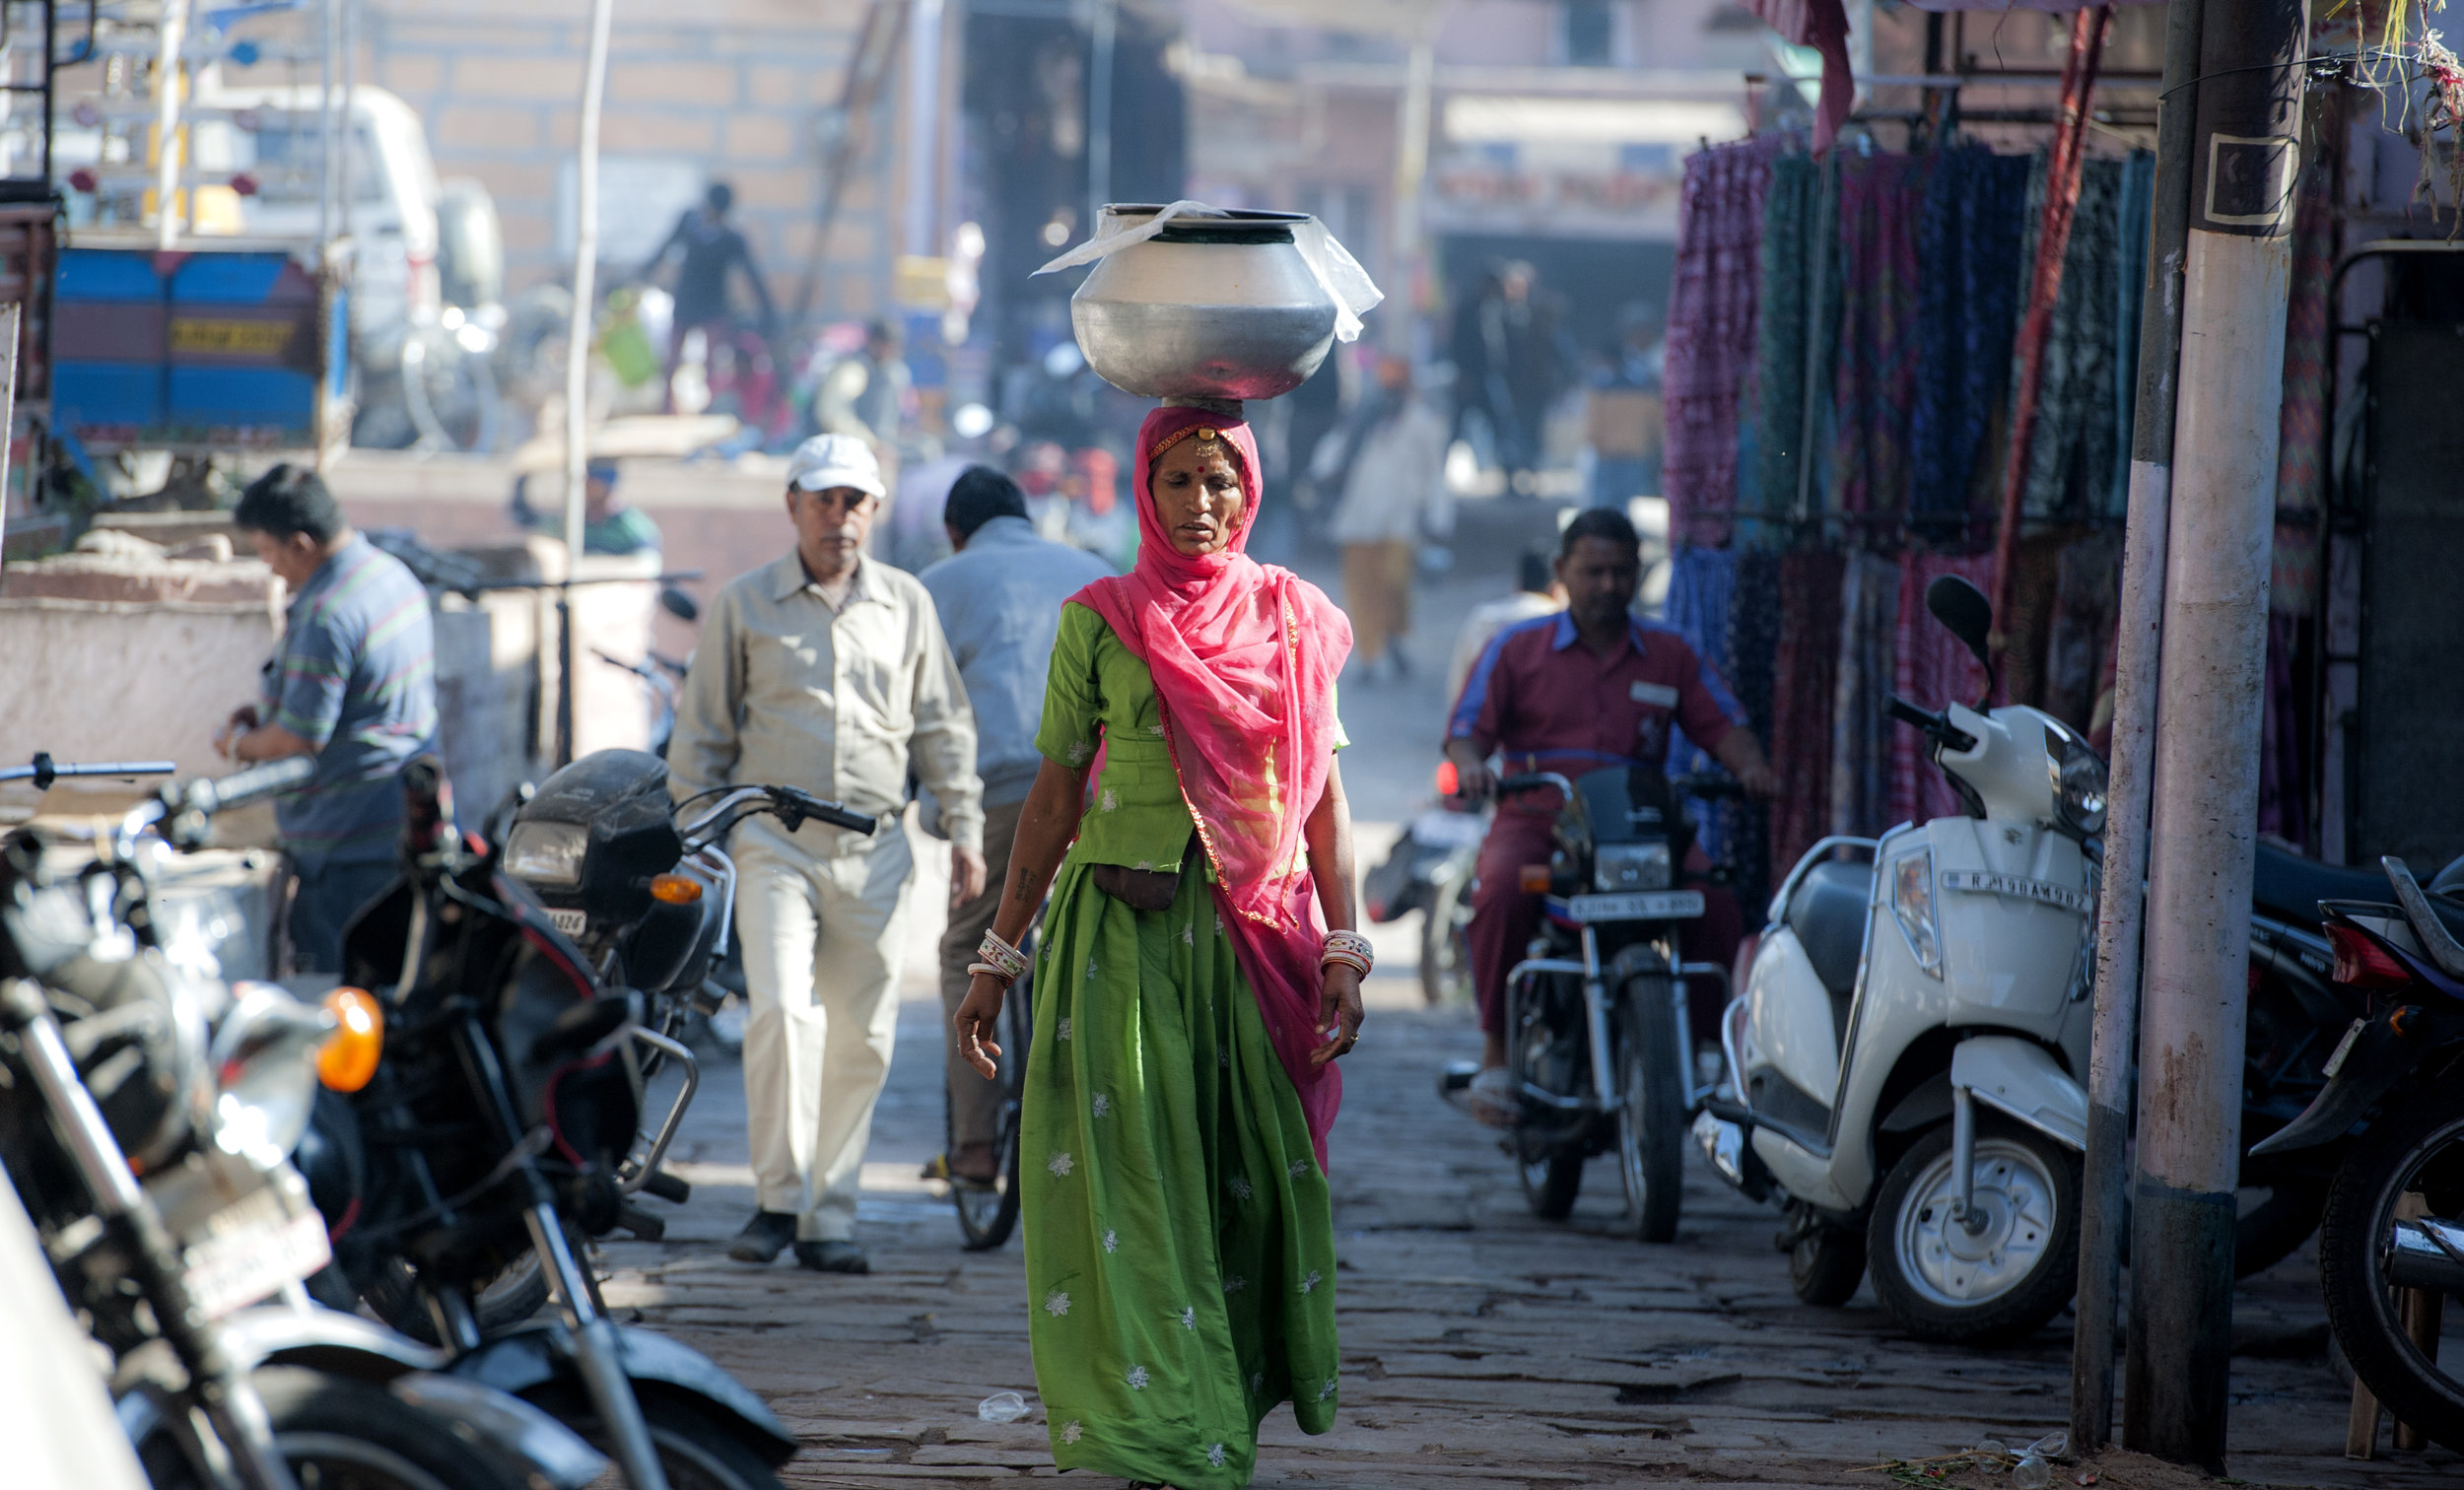 On a street of the dusty market in Jodhpur, India, she walked toward me with such a beautiful elegance.